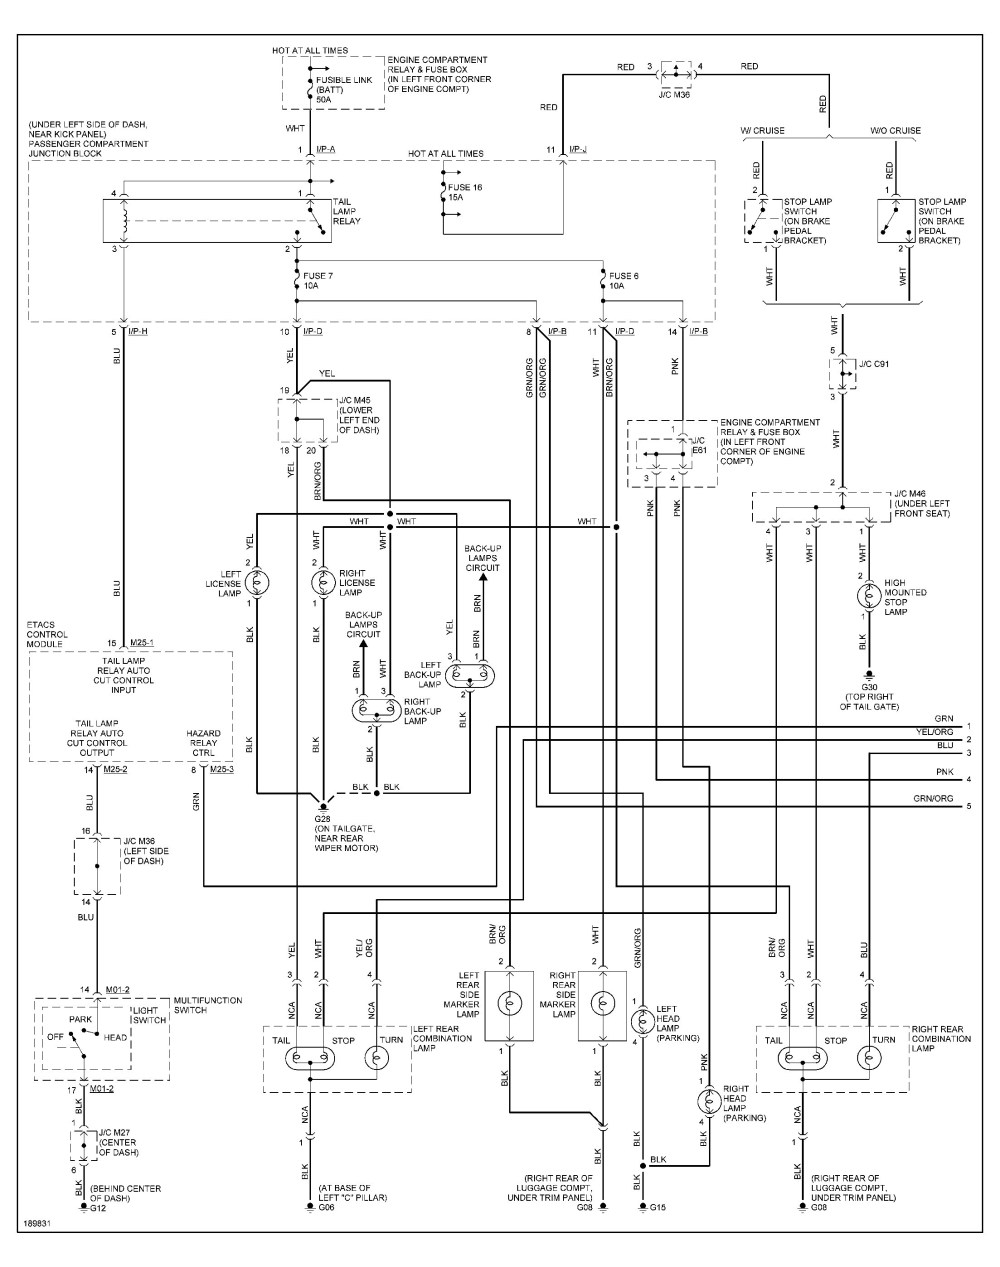 medium resolution of 2010 hyundai santa fe engine diagram wiring library 2006 hyundai santa fe fuse diagram 2003 hyundai